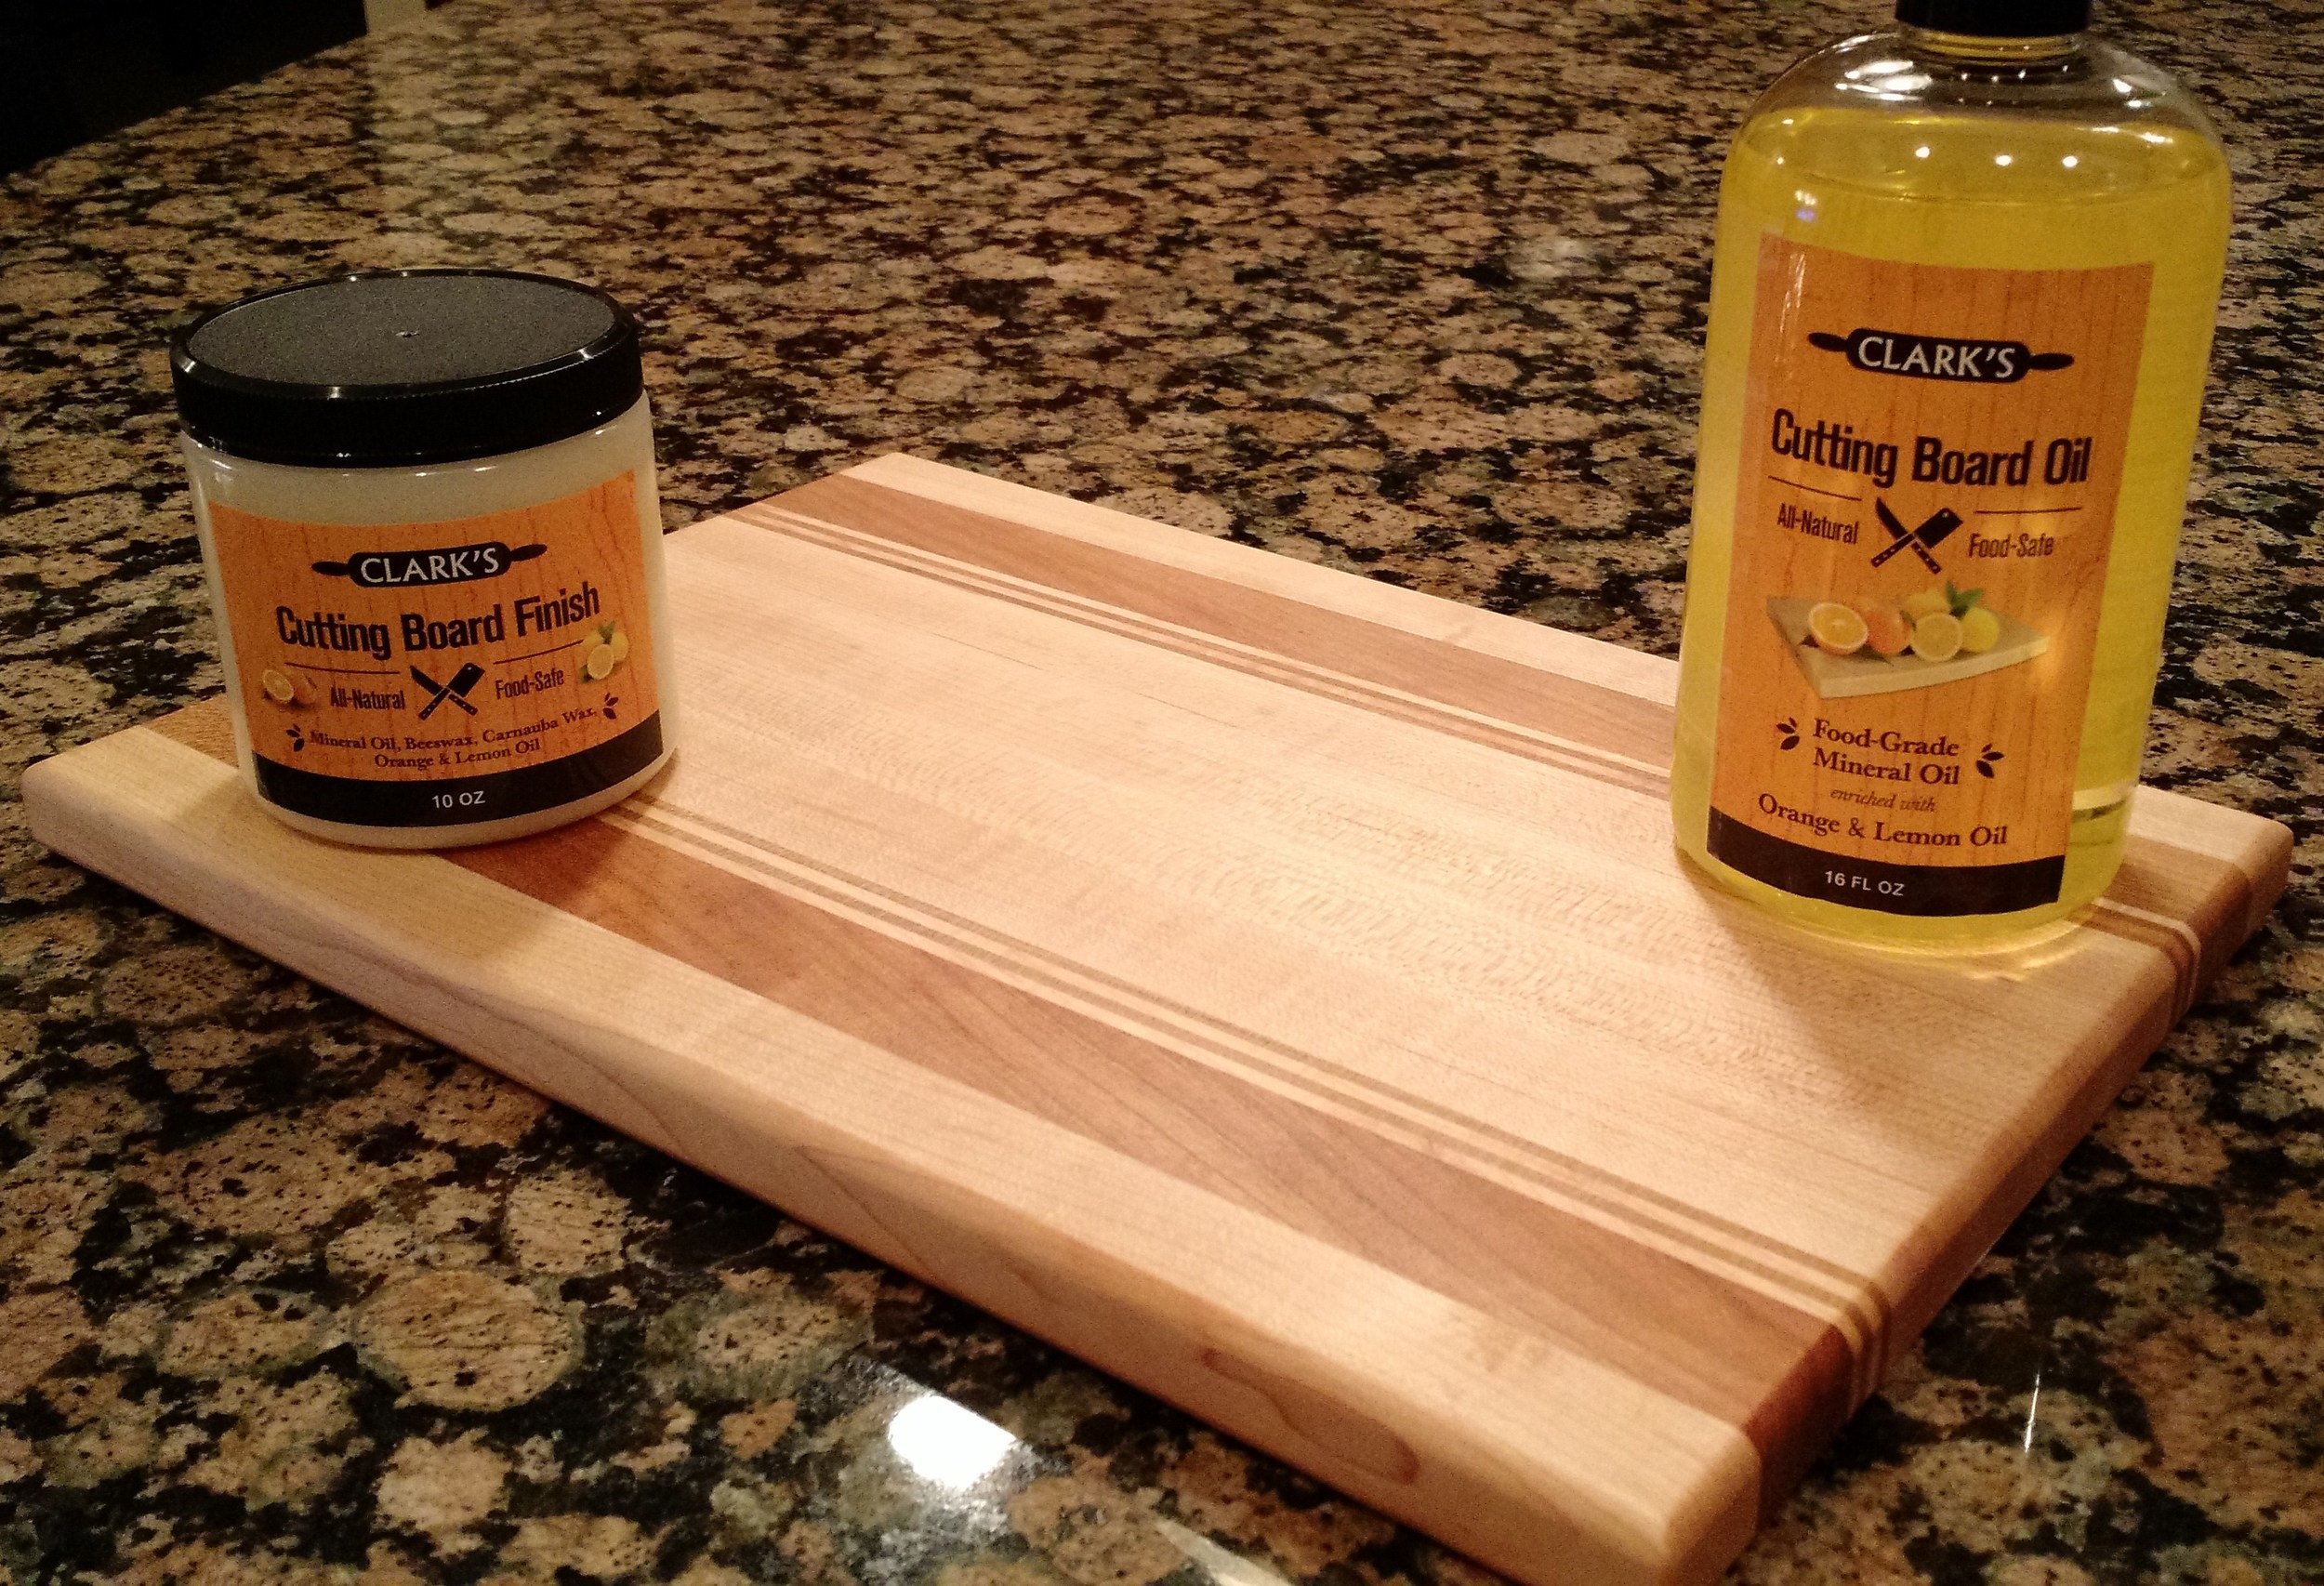 Beeswax For Cutting Boards